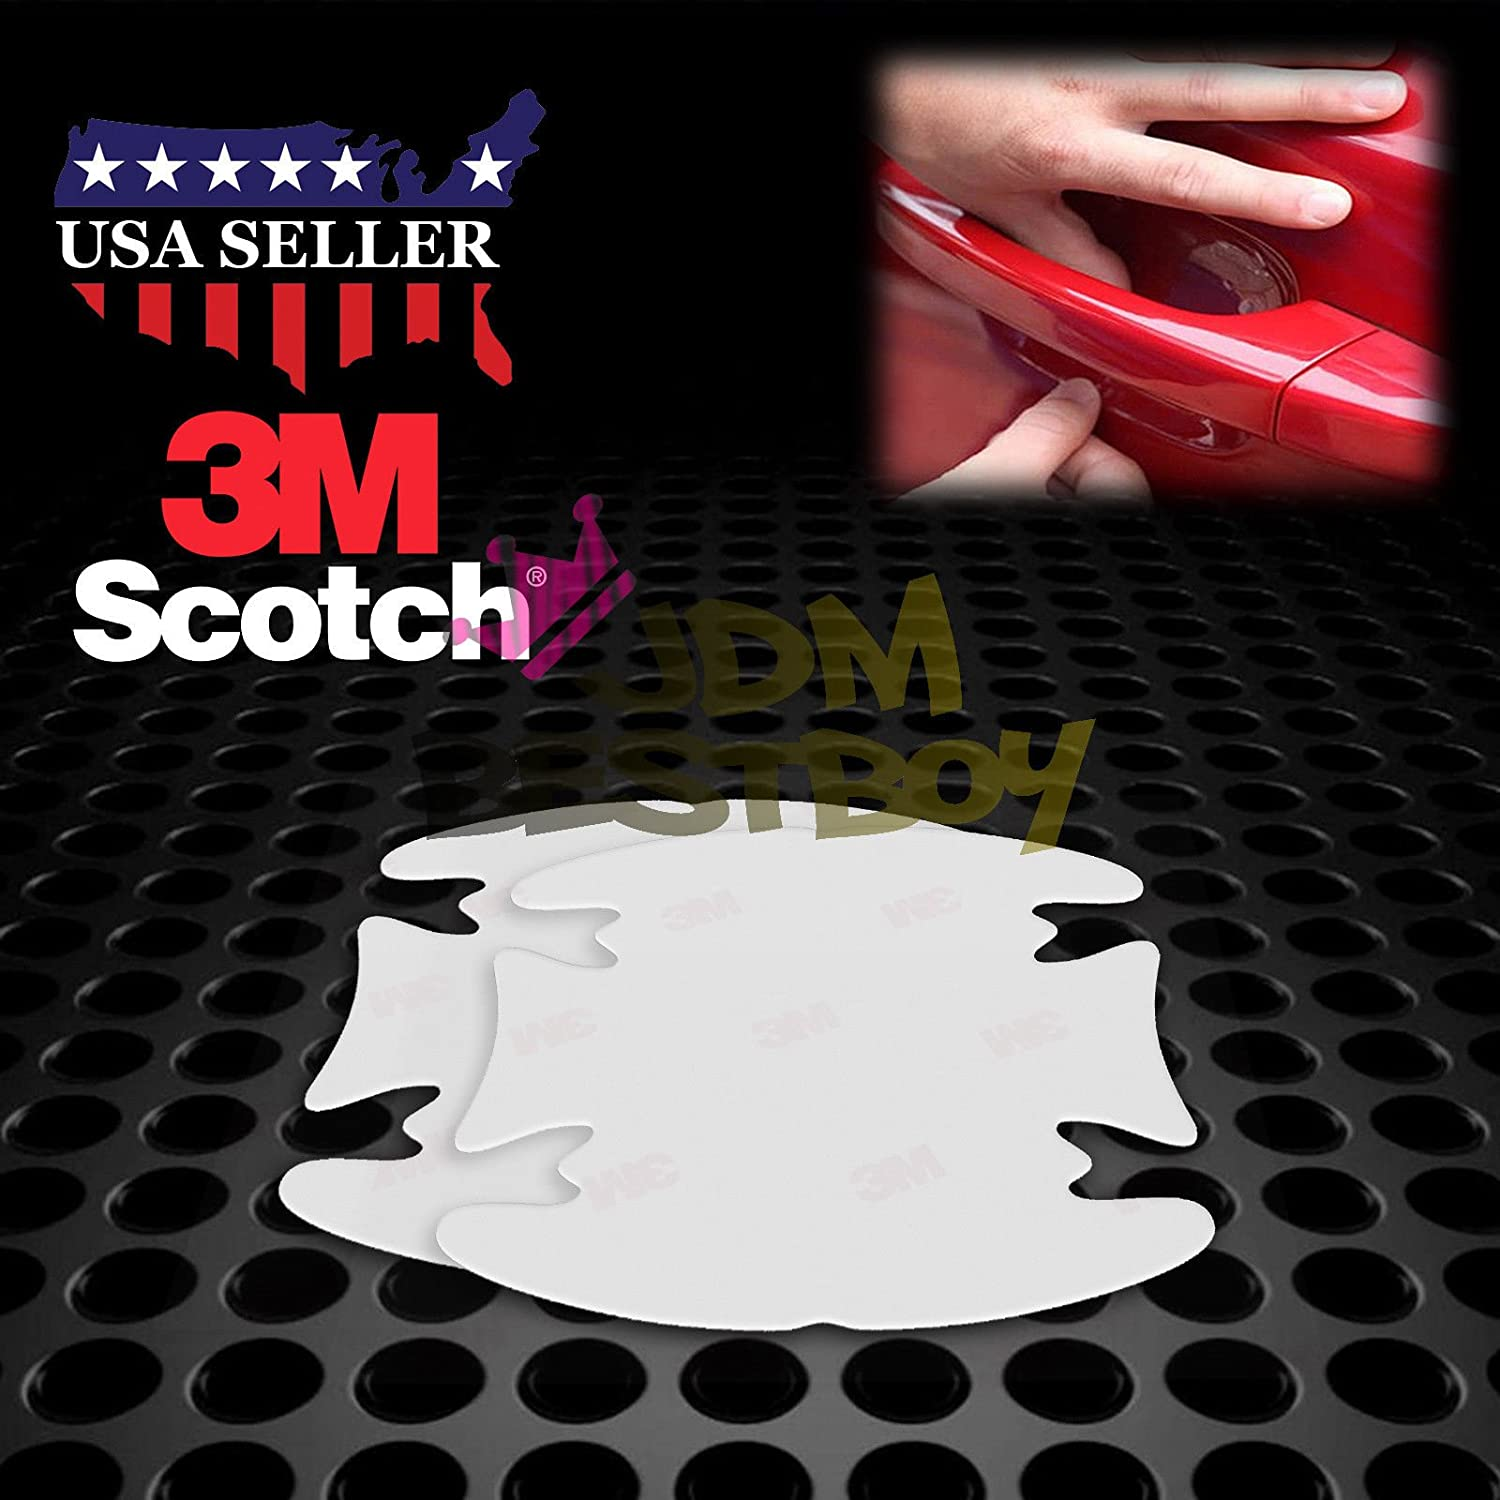 JDMBESTBOY 2PCs 3M Scotchguard Clear Door Cup Handle Paint Scratch Protection Protector Guard Film Bra